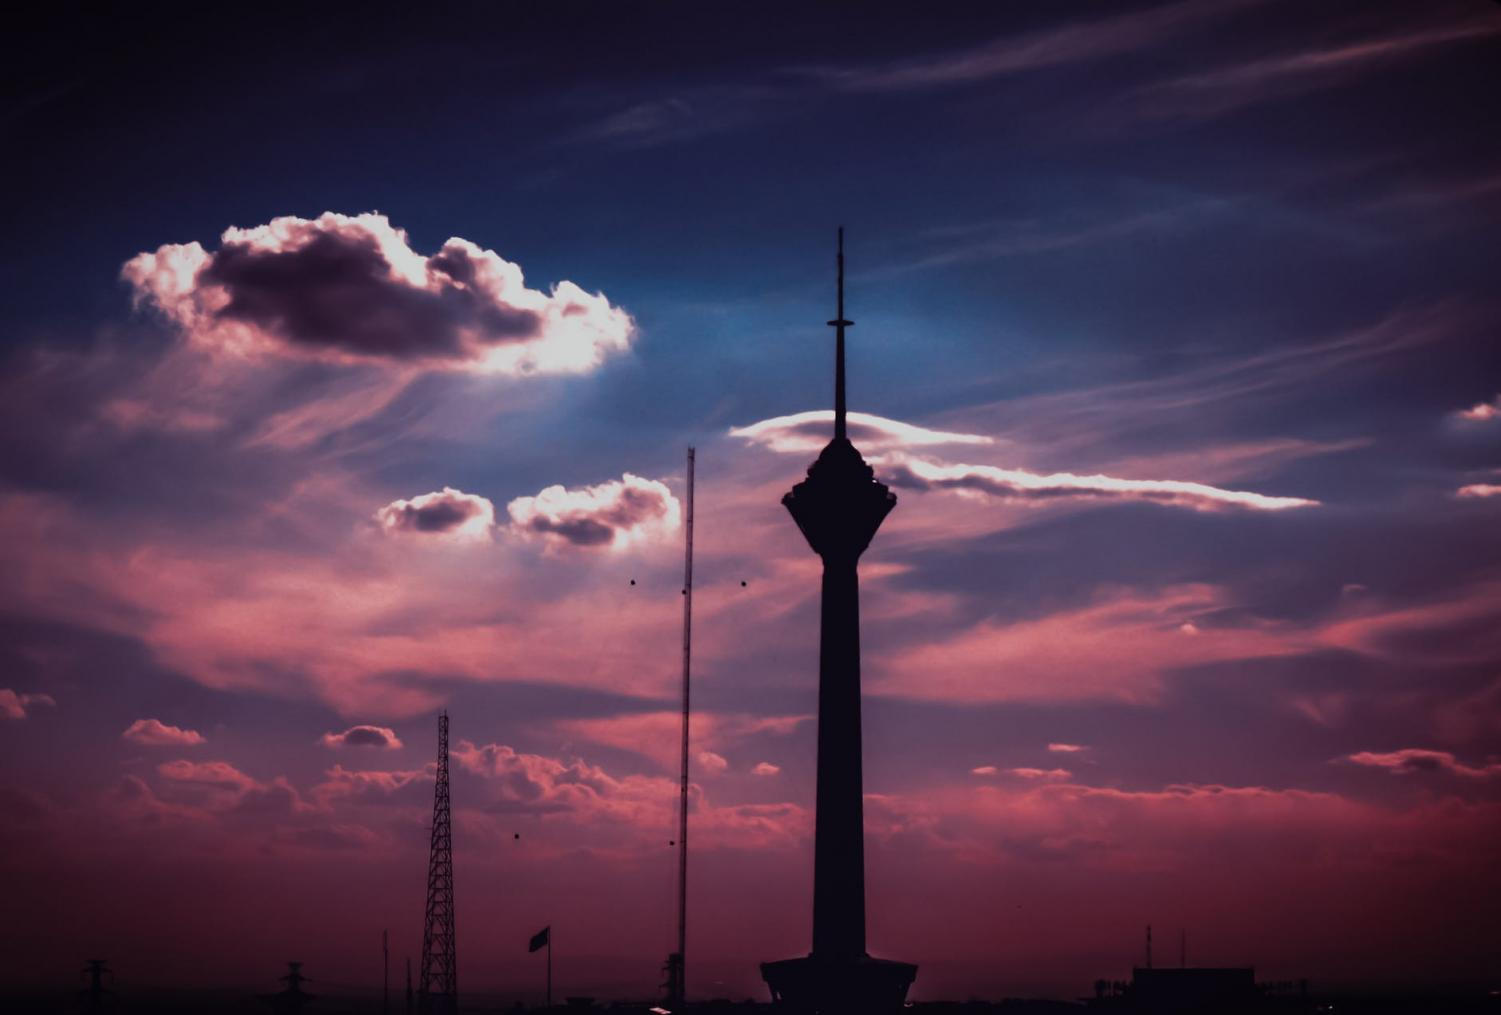 Picture of the Milad Tower in Tehran, Iran during the sunset. Property of Pexels.com.